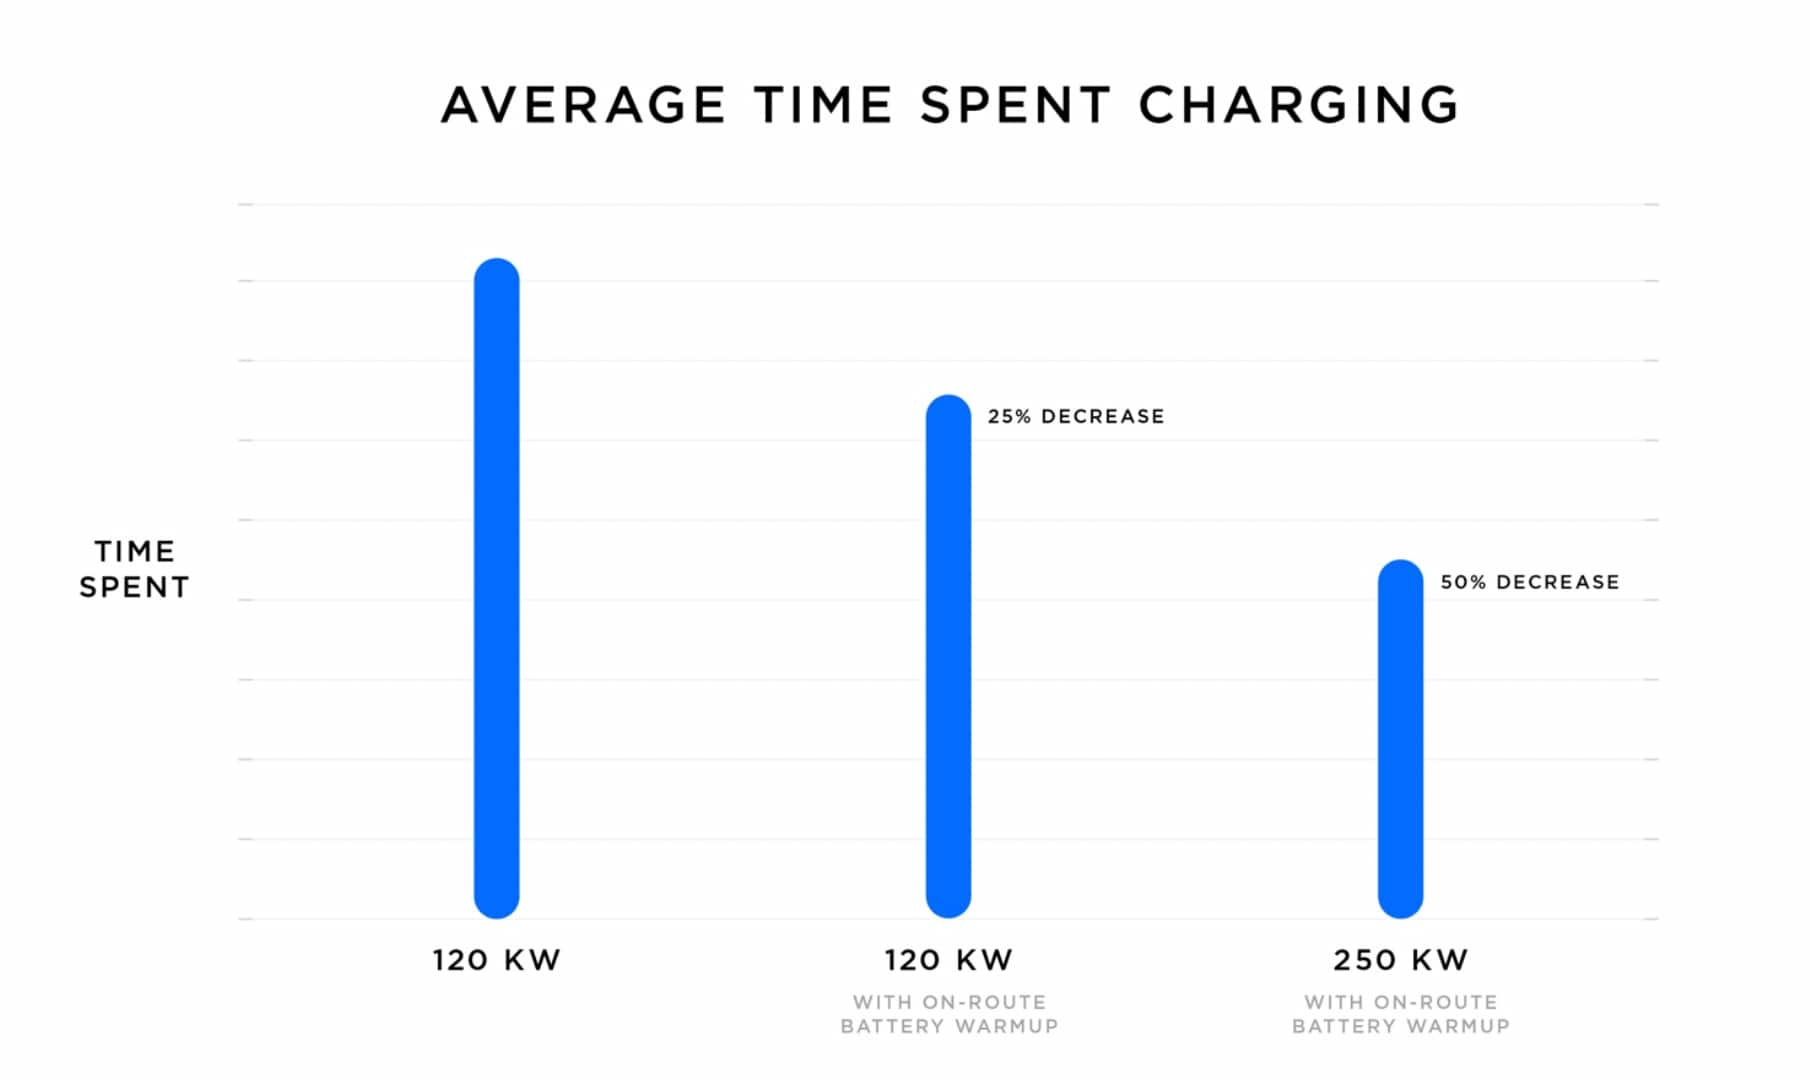 The Time And Tesla To Serve More Than Twice Number Of Customers Per Hour Additionally We Are Also Unlocking 145kw Charge Rates For Our 12 000 V2